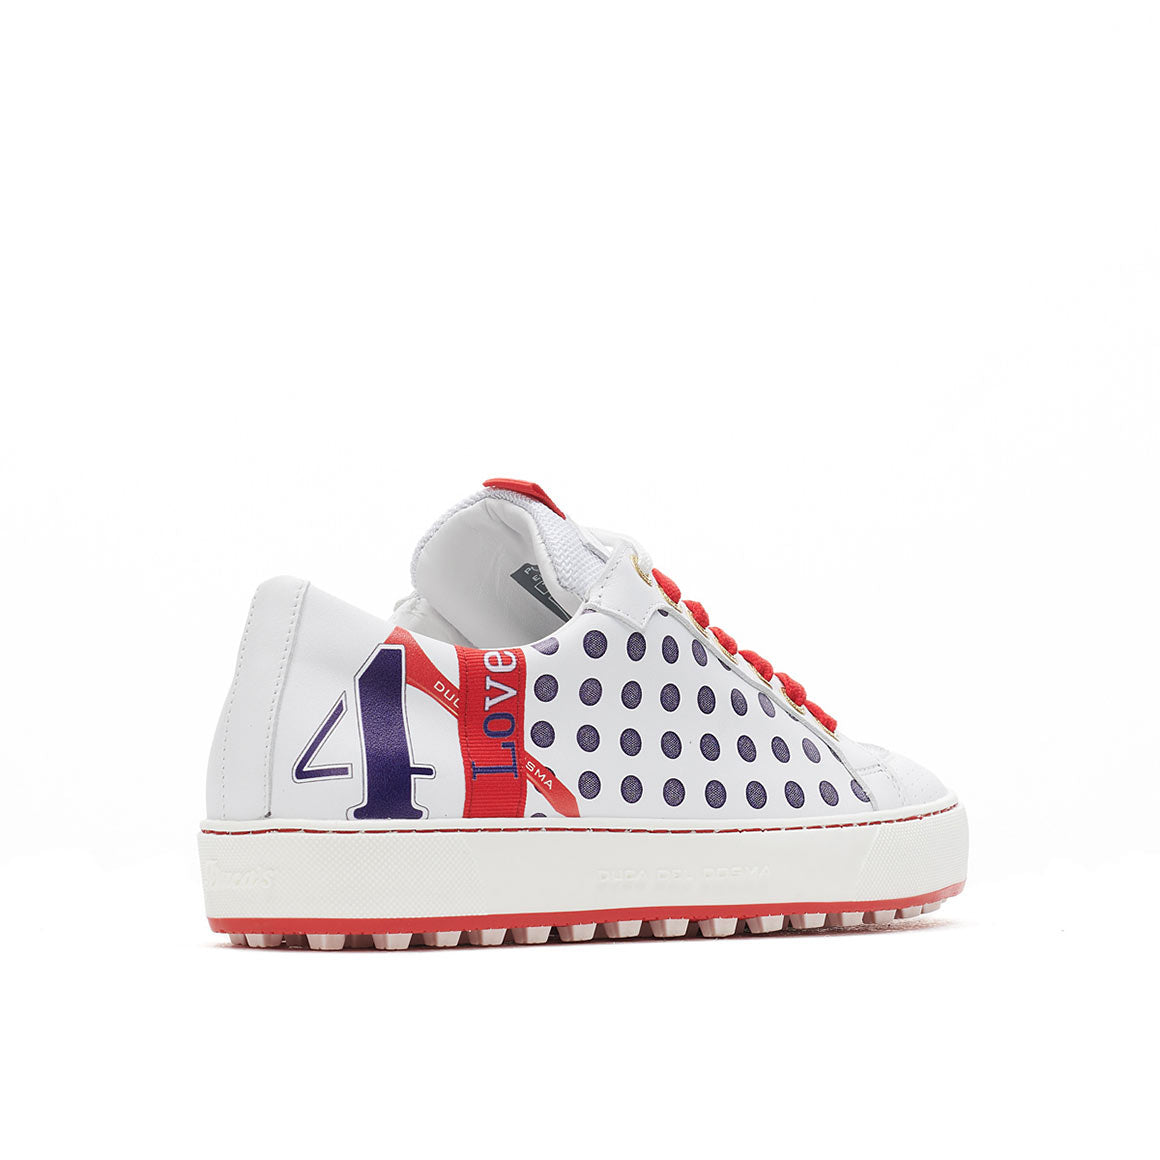 Women's Esti White / Red Golf Shoe